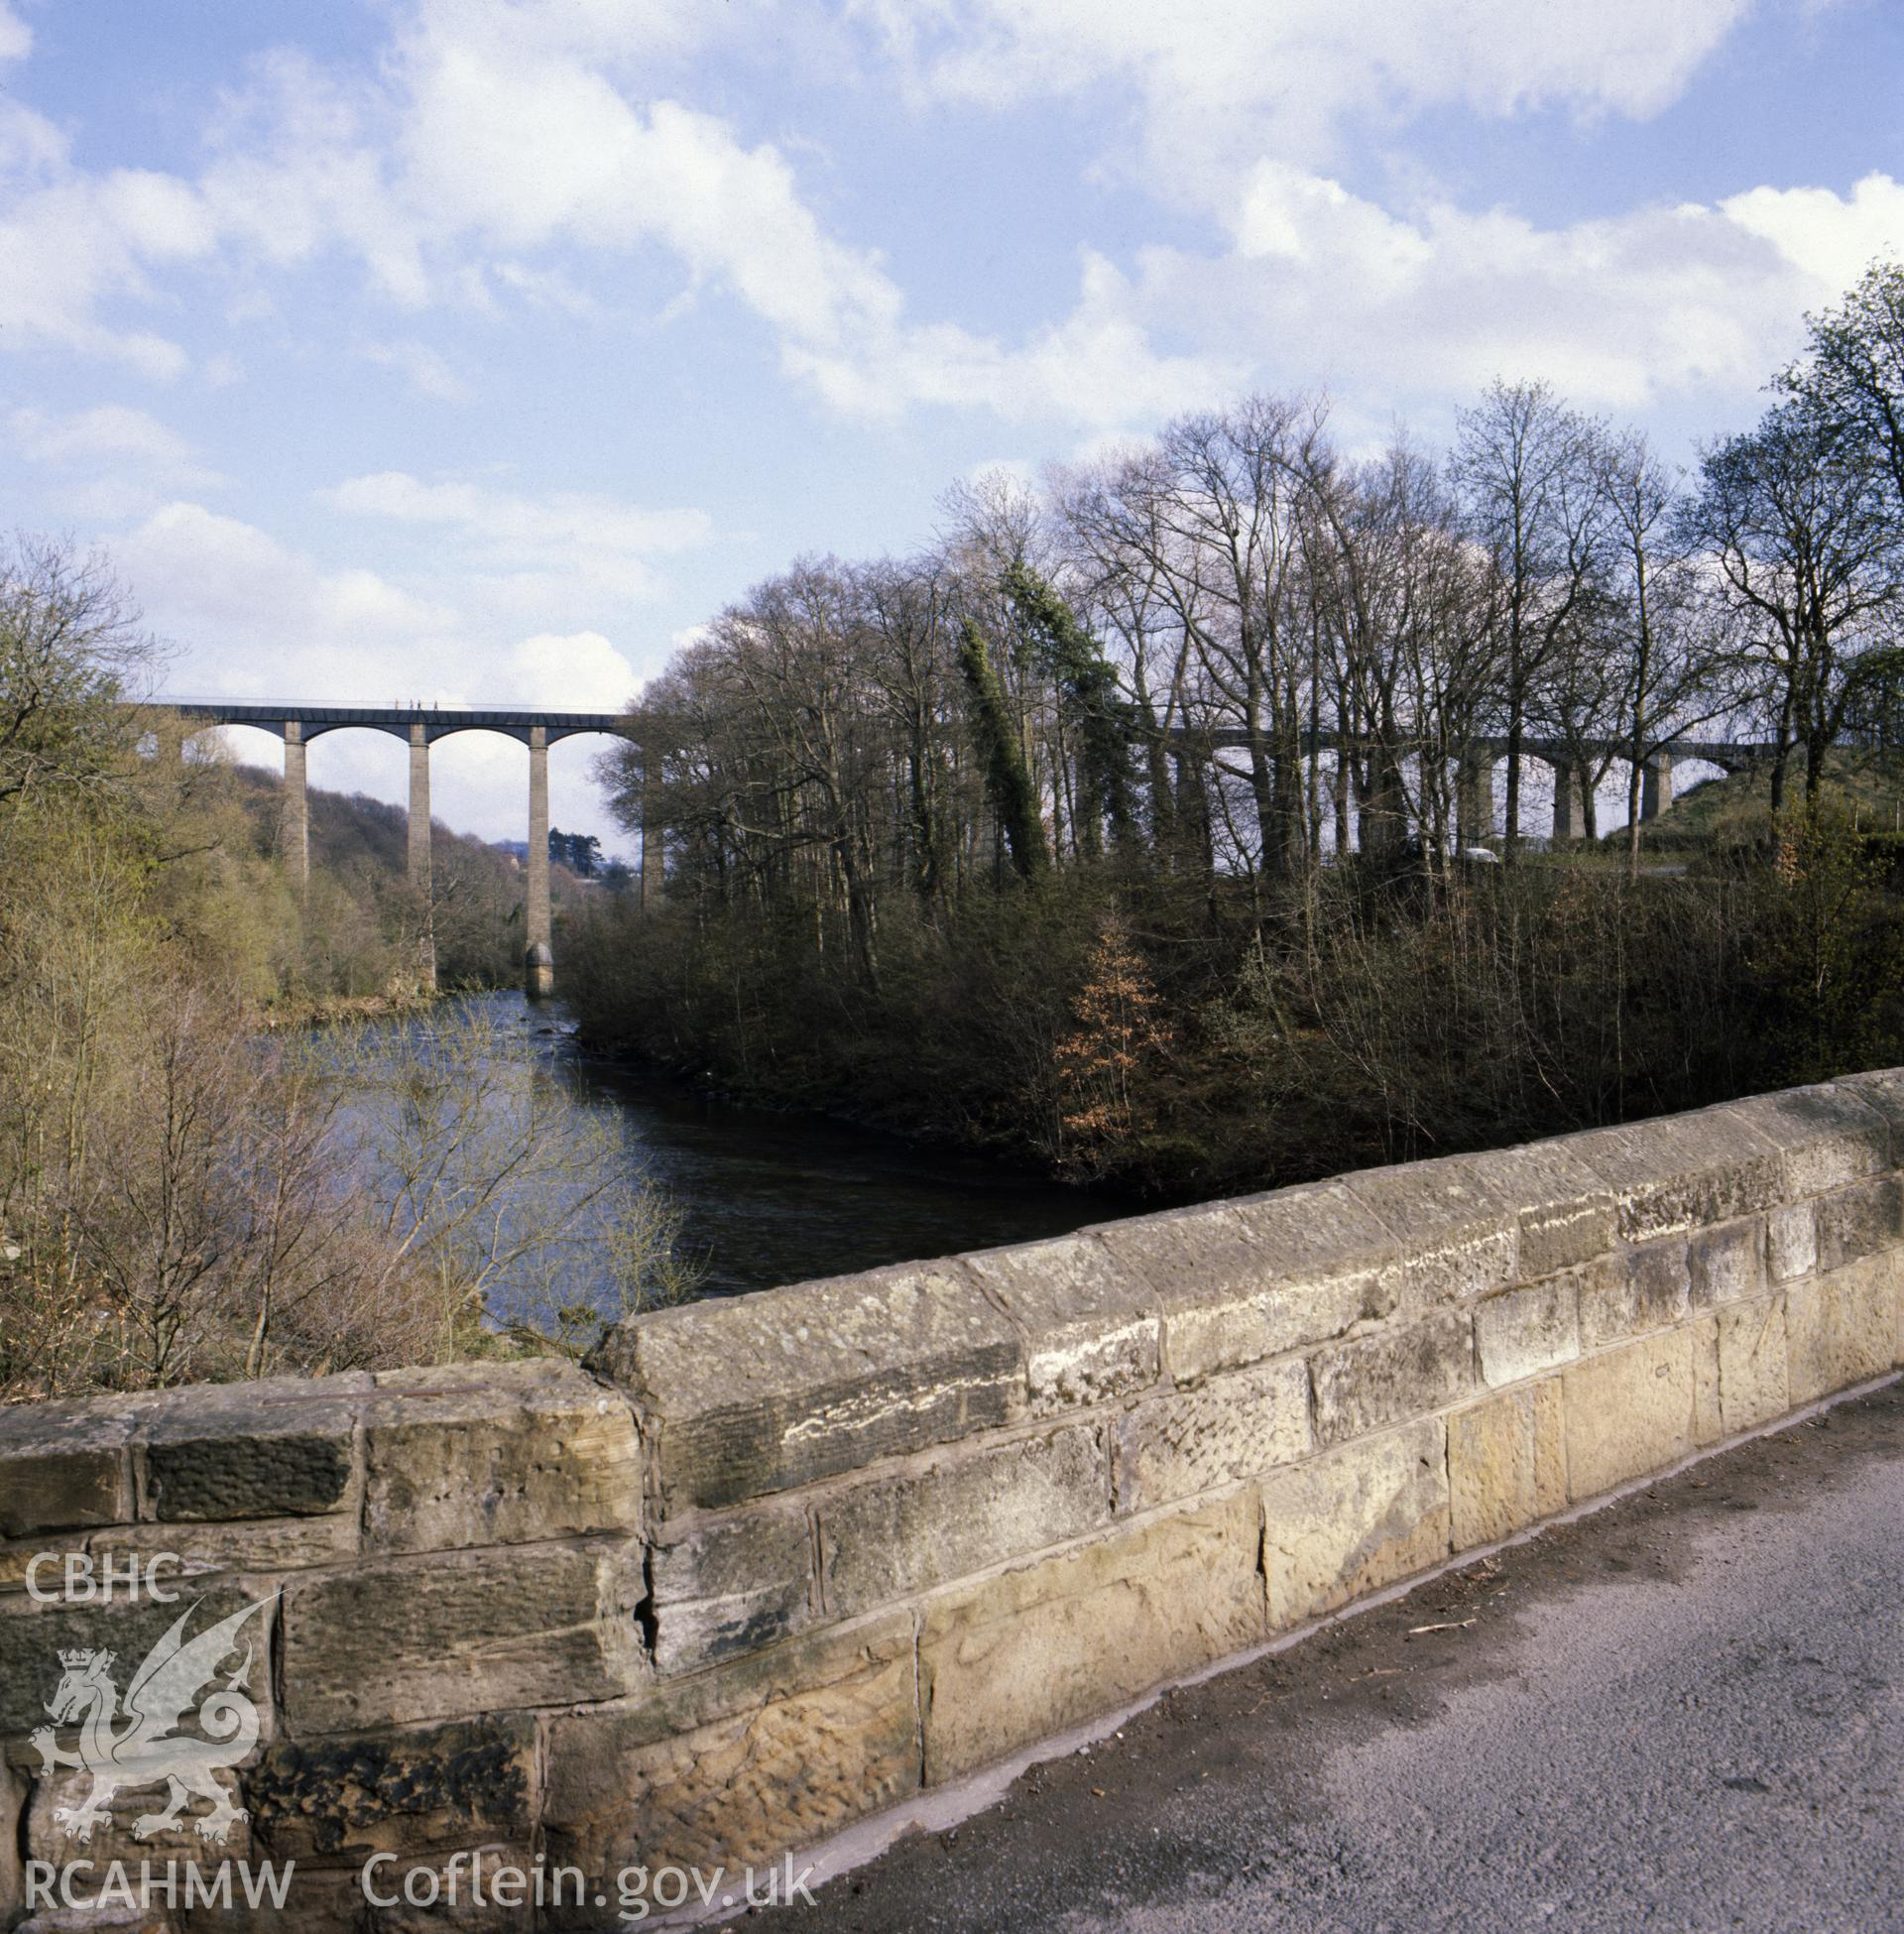 1 colour transparency showing view of Pontcysyllte Aqueduct, undated; collated by the former Central Office of Information.